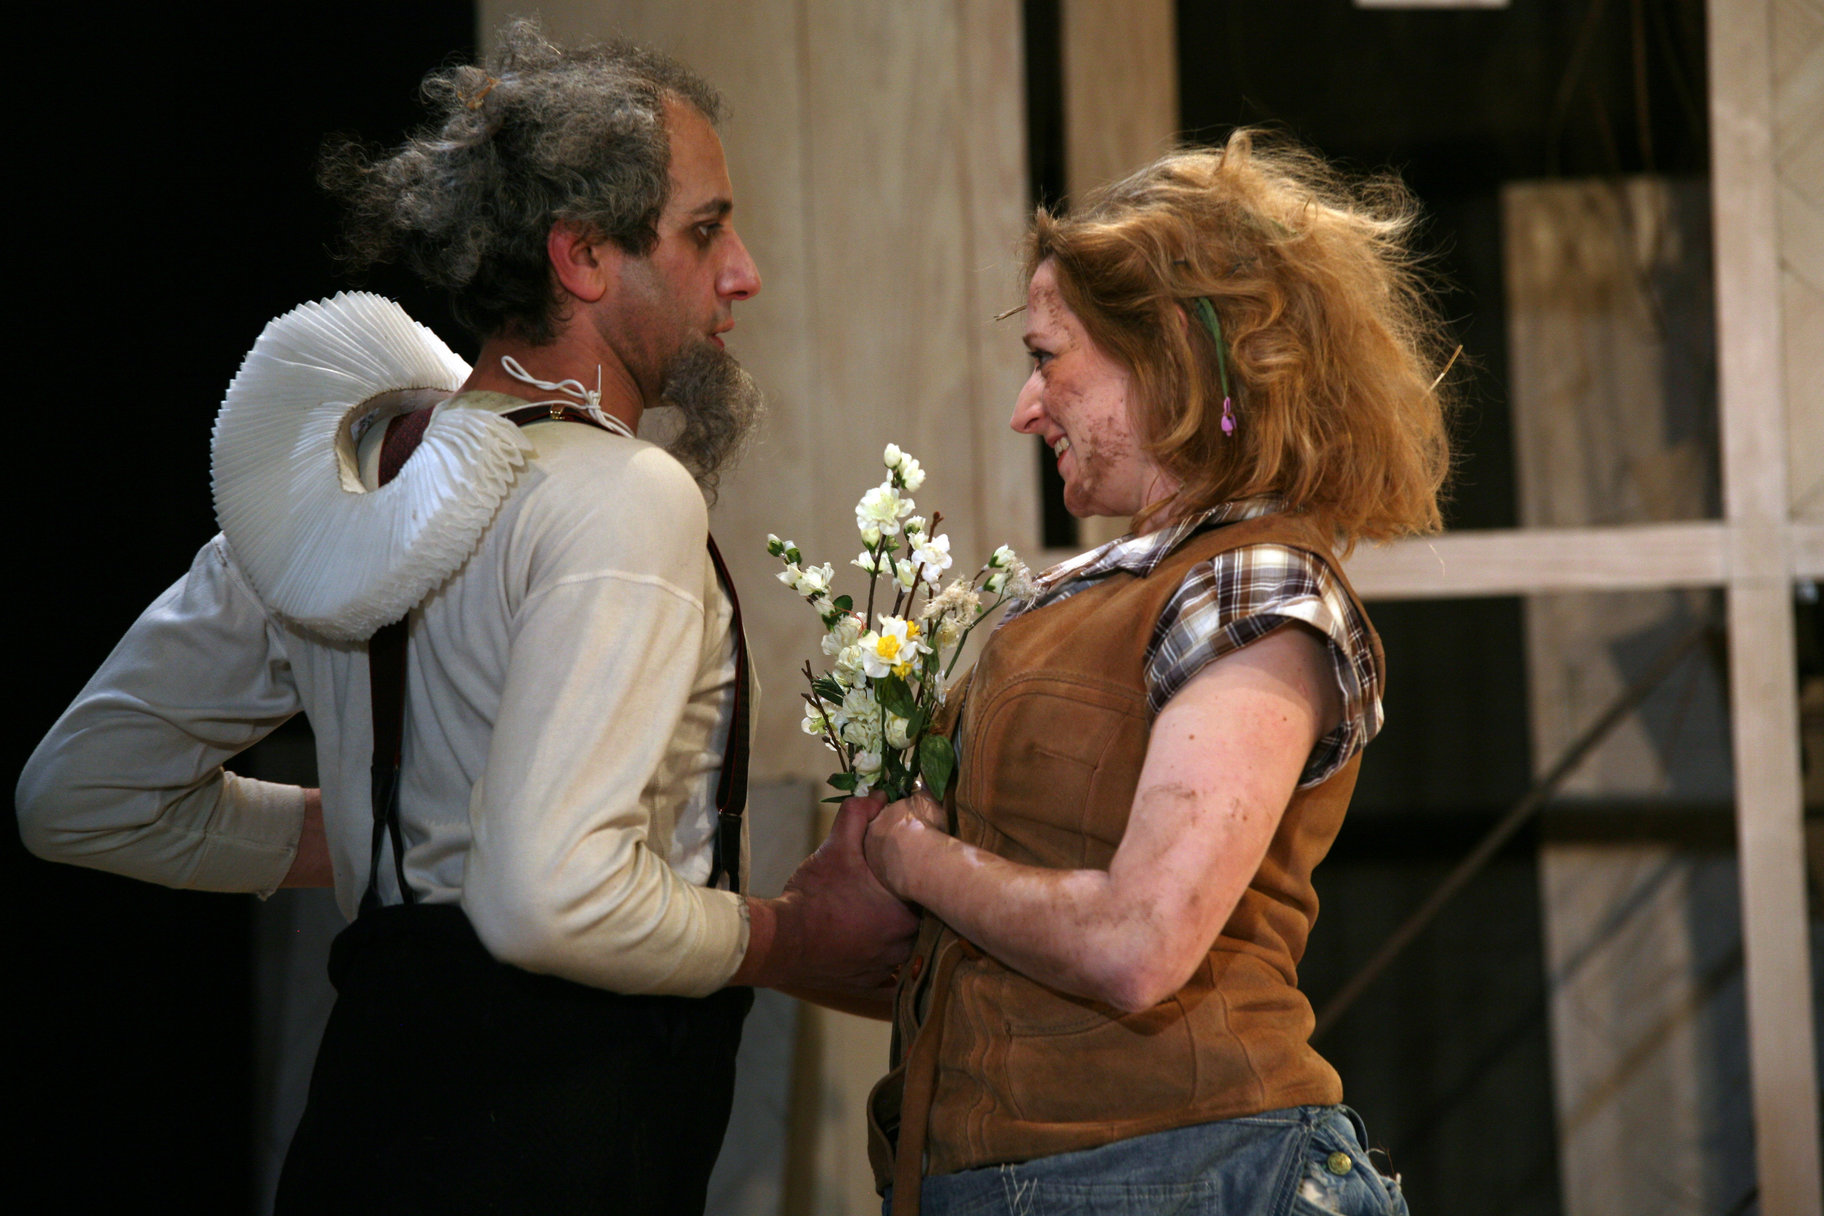 A man and woman hold flowers between them.